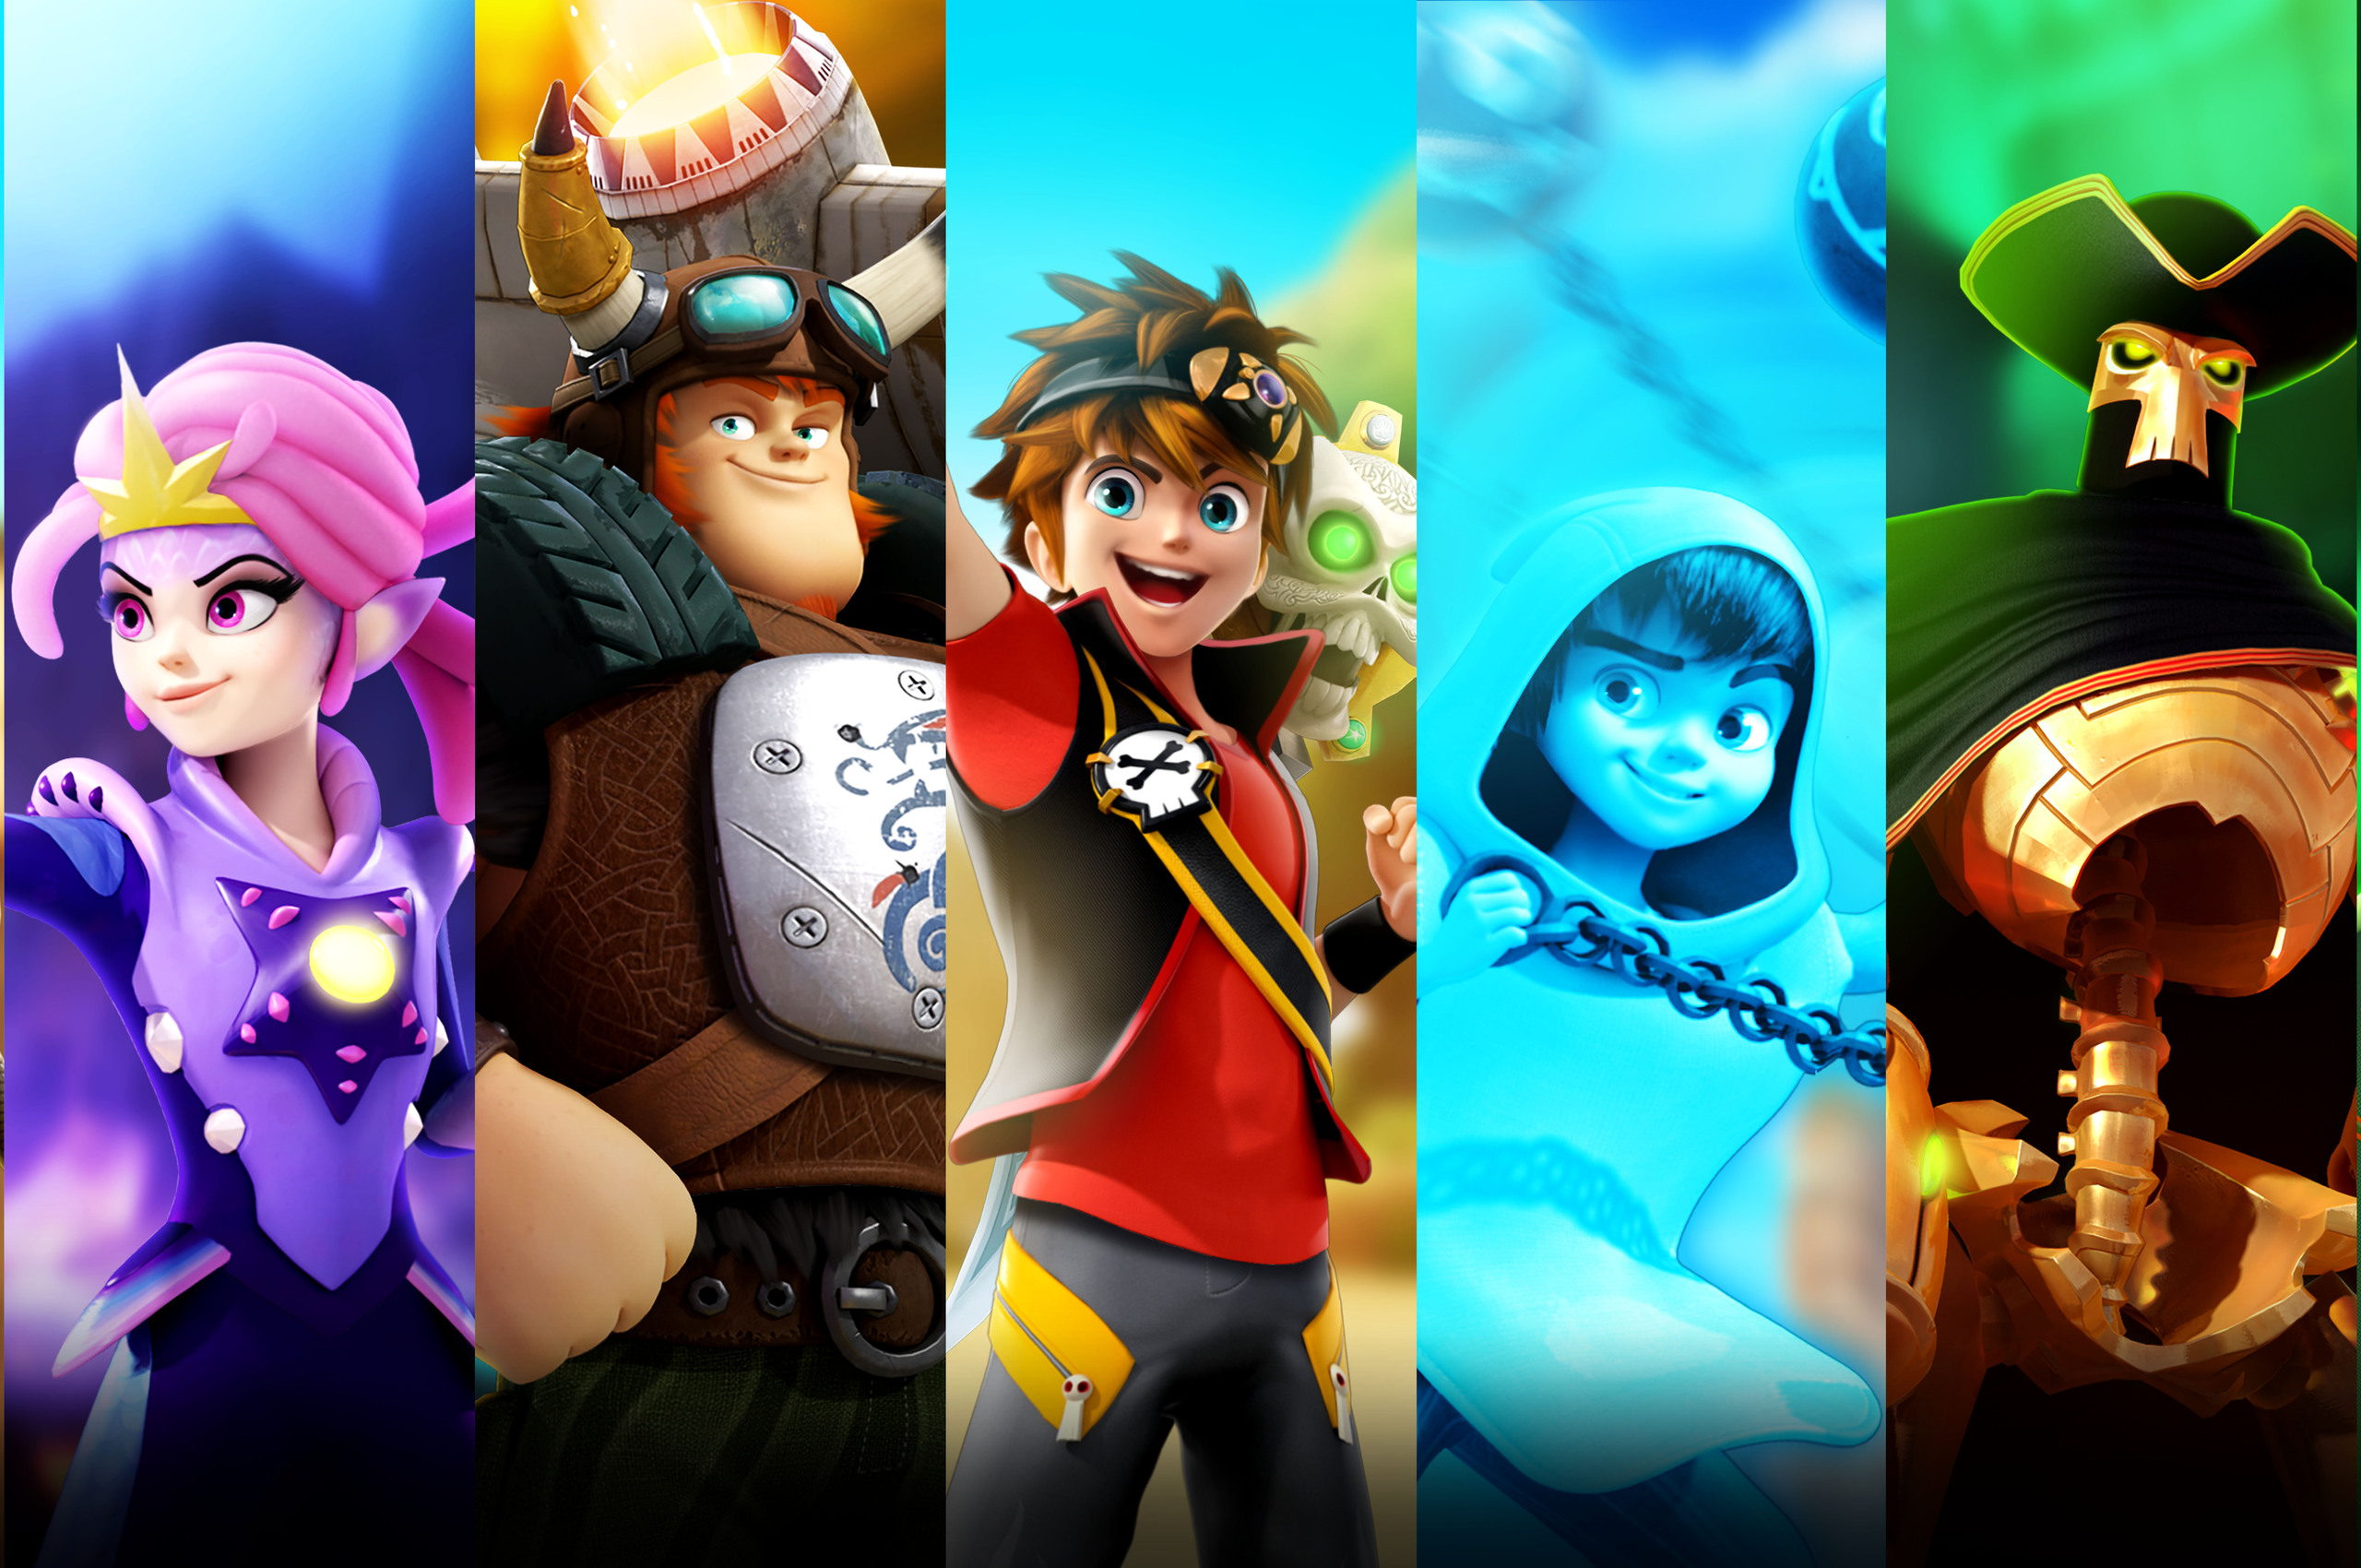 2560x1700 Zak Storm Tv Show 10k Chromebook Pixel Hd 4k Wallpapers Images Backgrounds Photos And Pictures